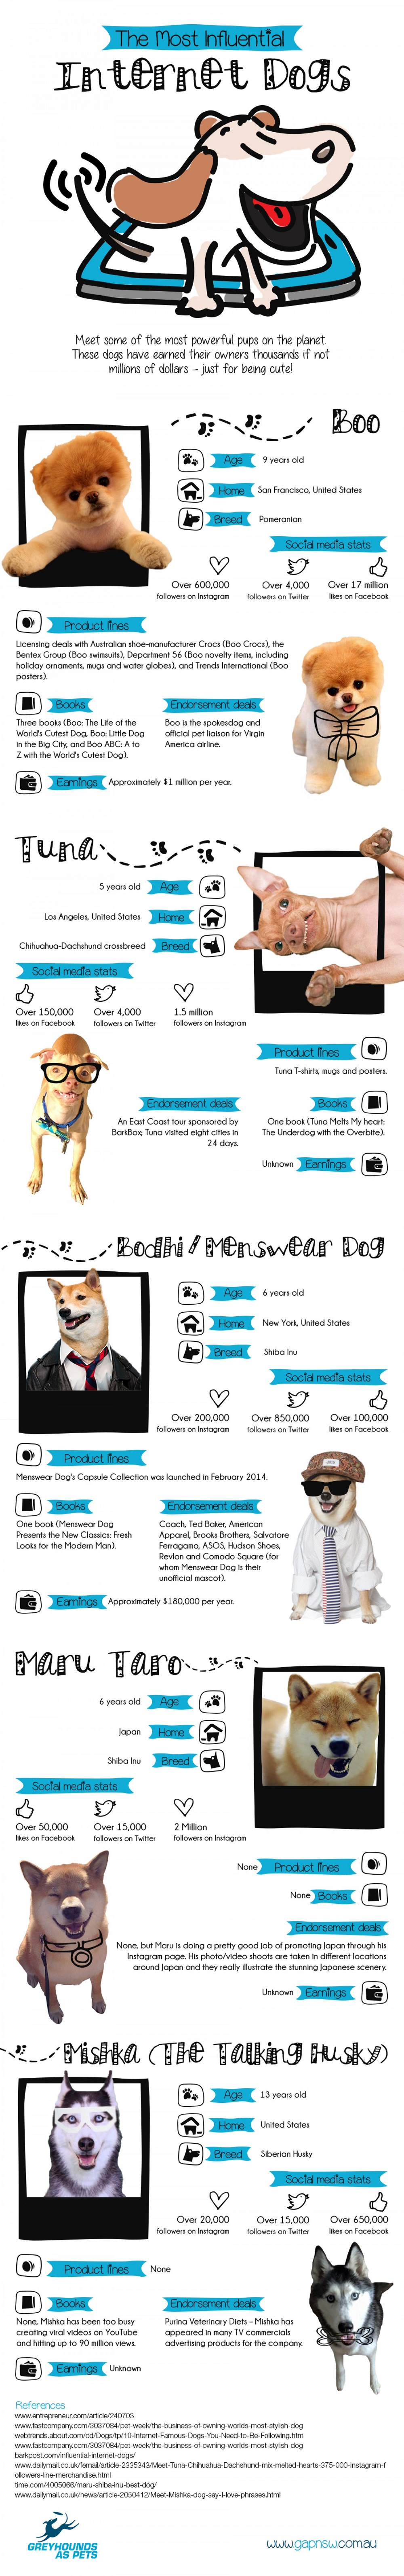 Most influential dogs on the internet